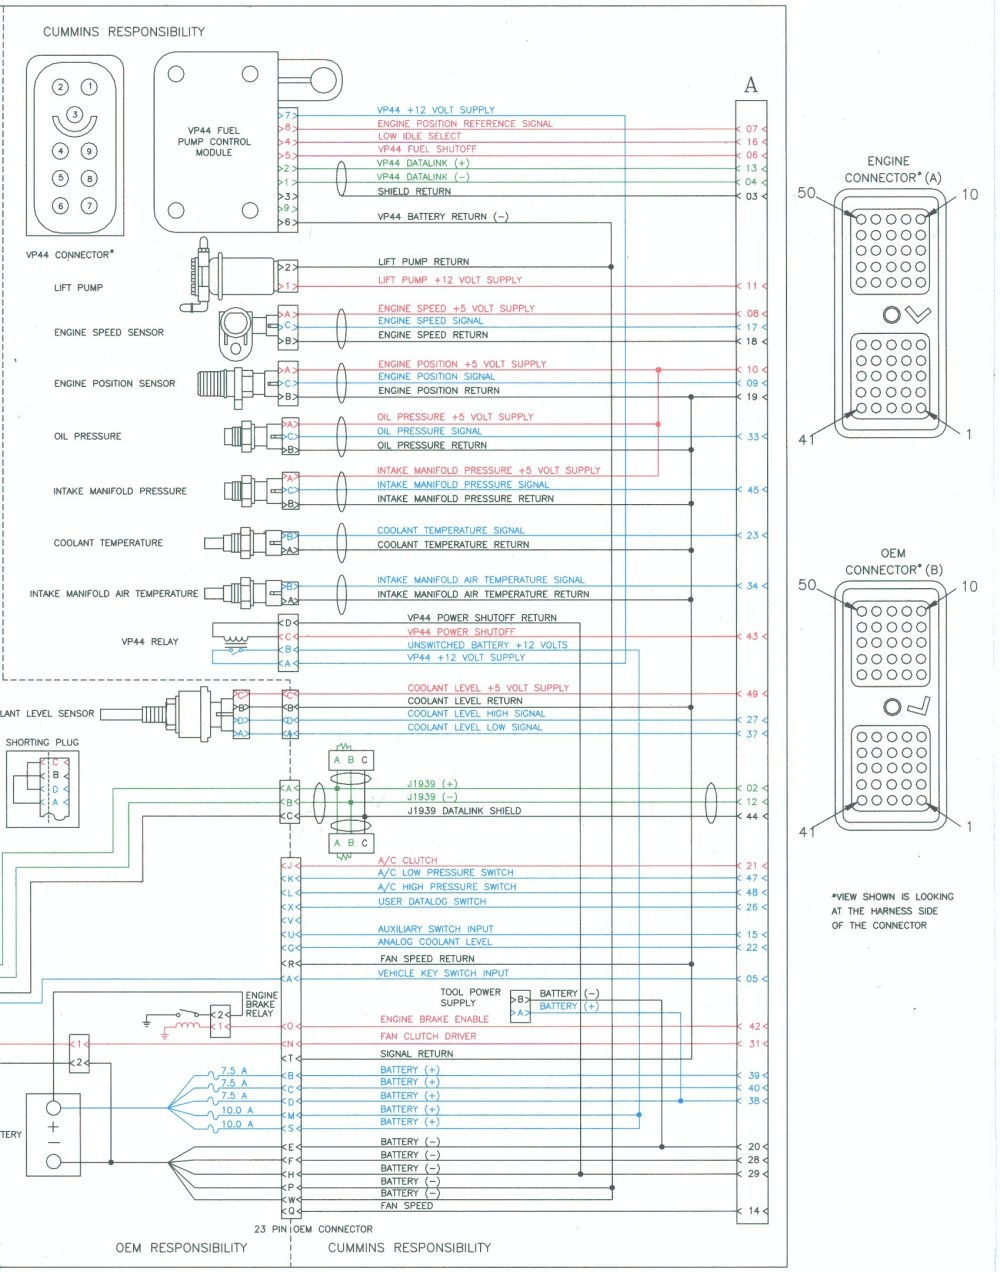 medium resolution of  glow plug relay wiring diagram best chevy 6 5 9 cummins engine diagram 2 2005 dodge cummins ecm wiring diagram sample of 5 9